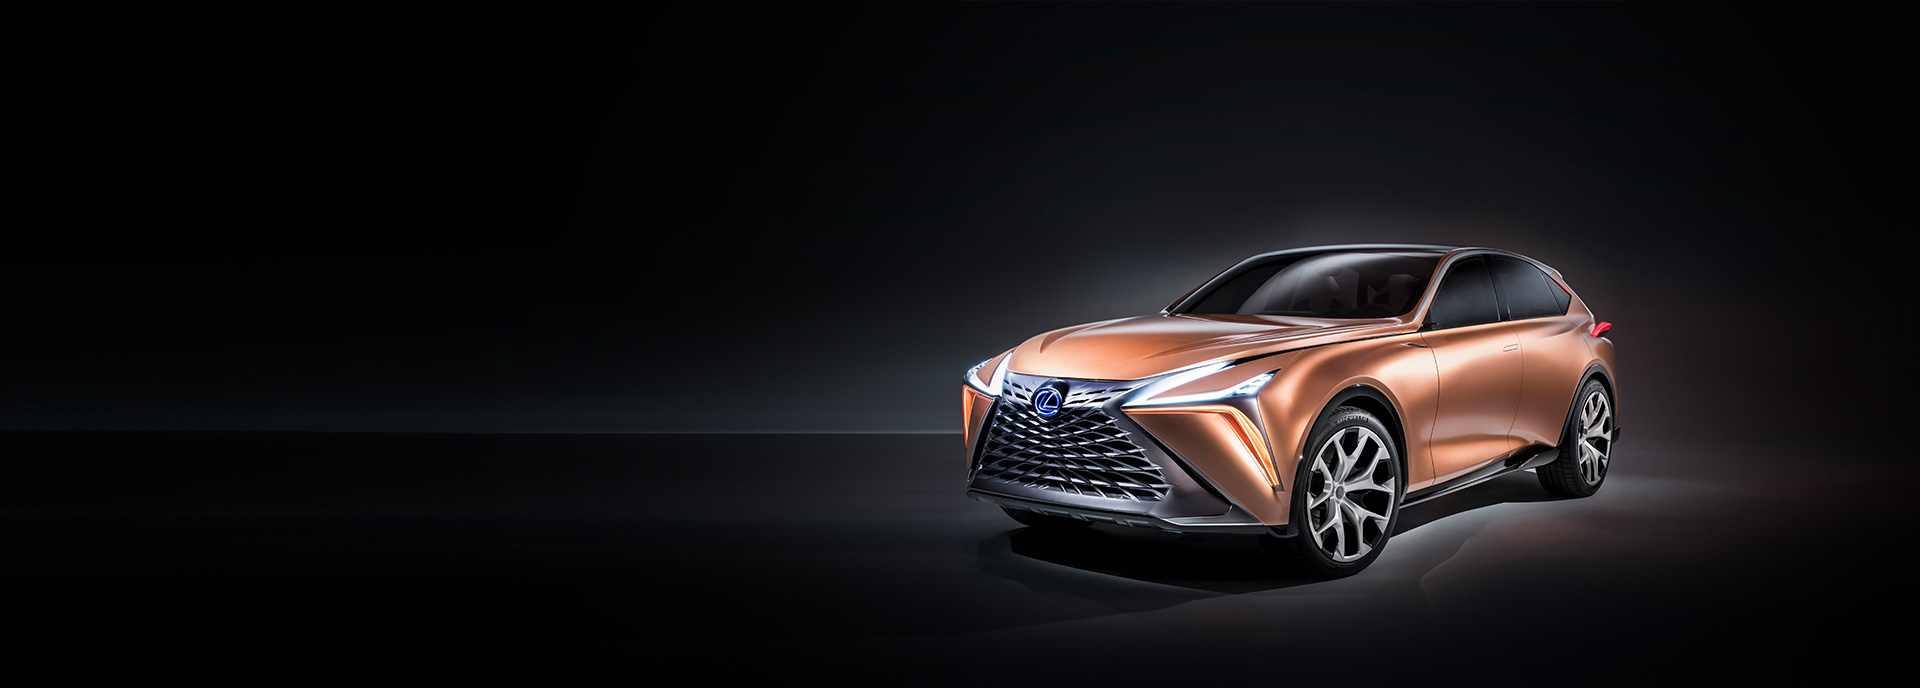 lexus 2018 lf 1 limitless hero